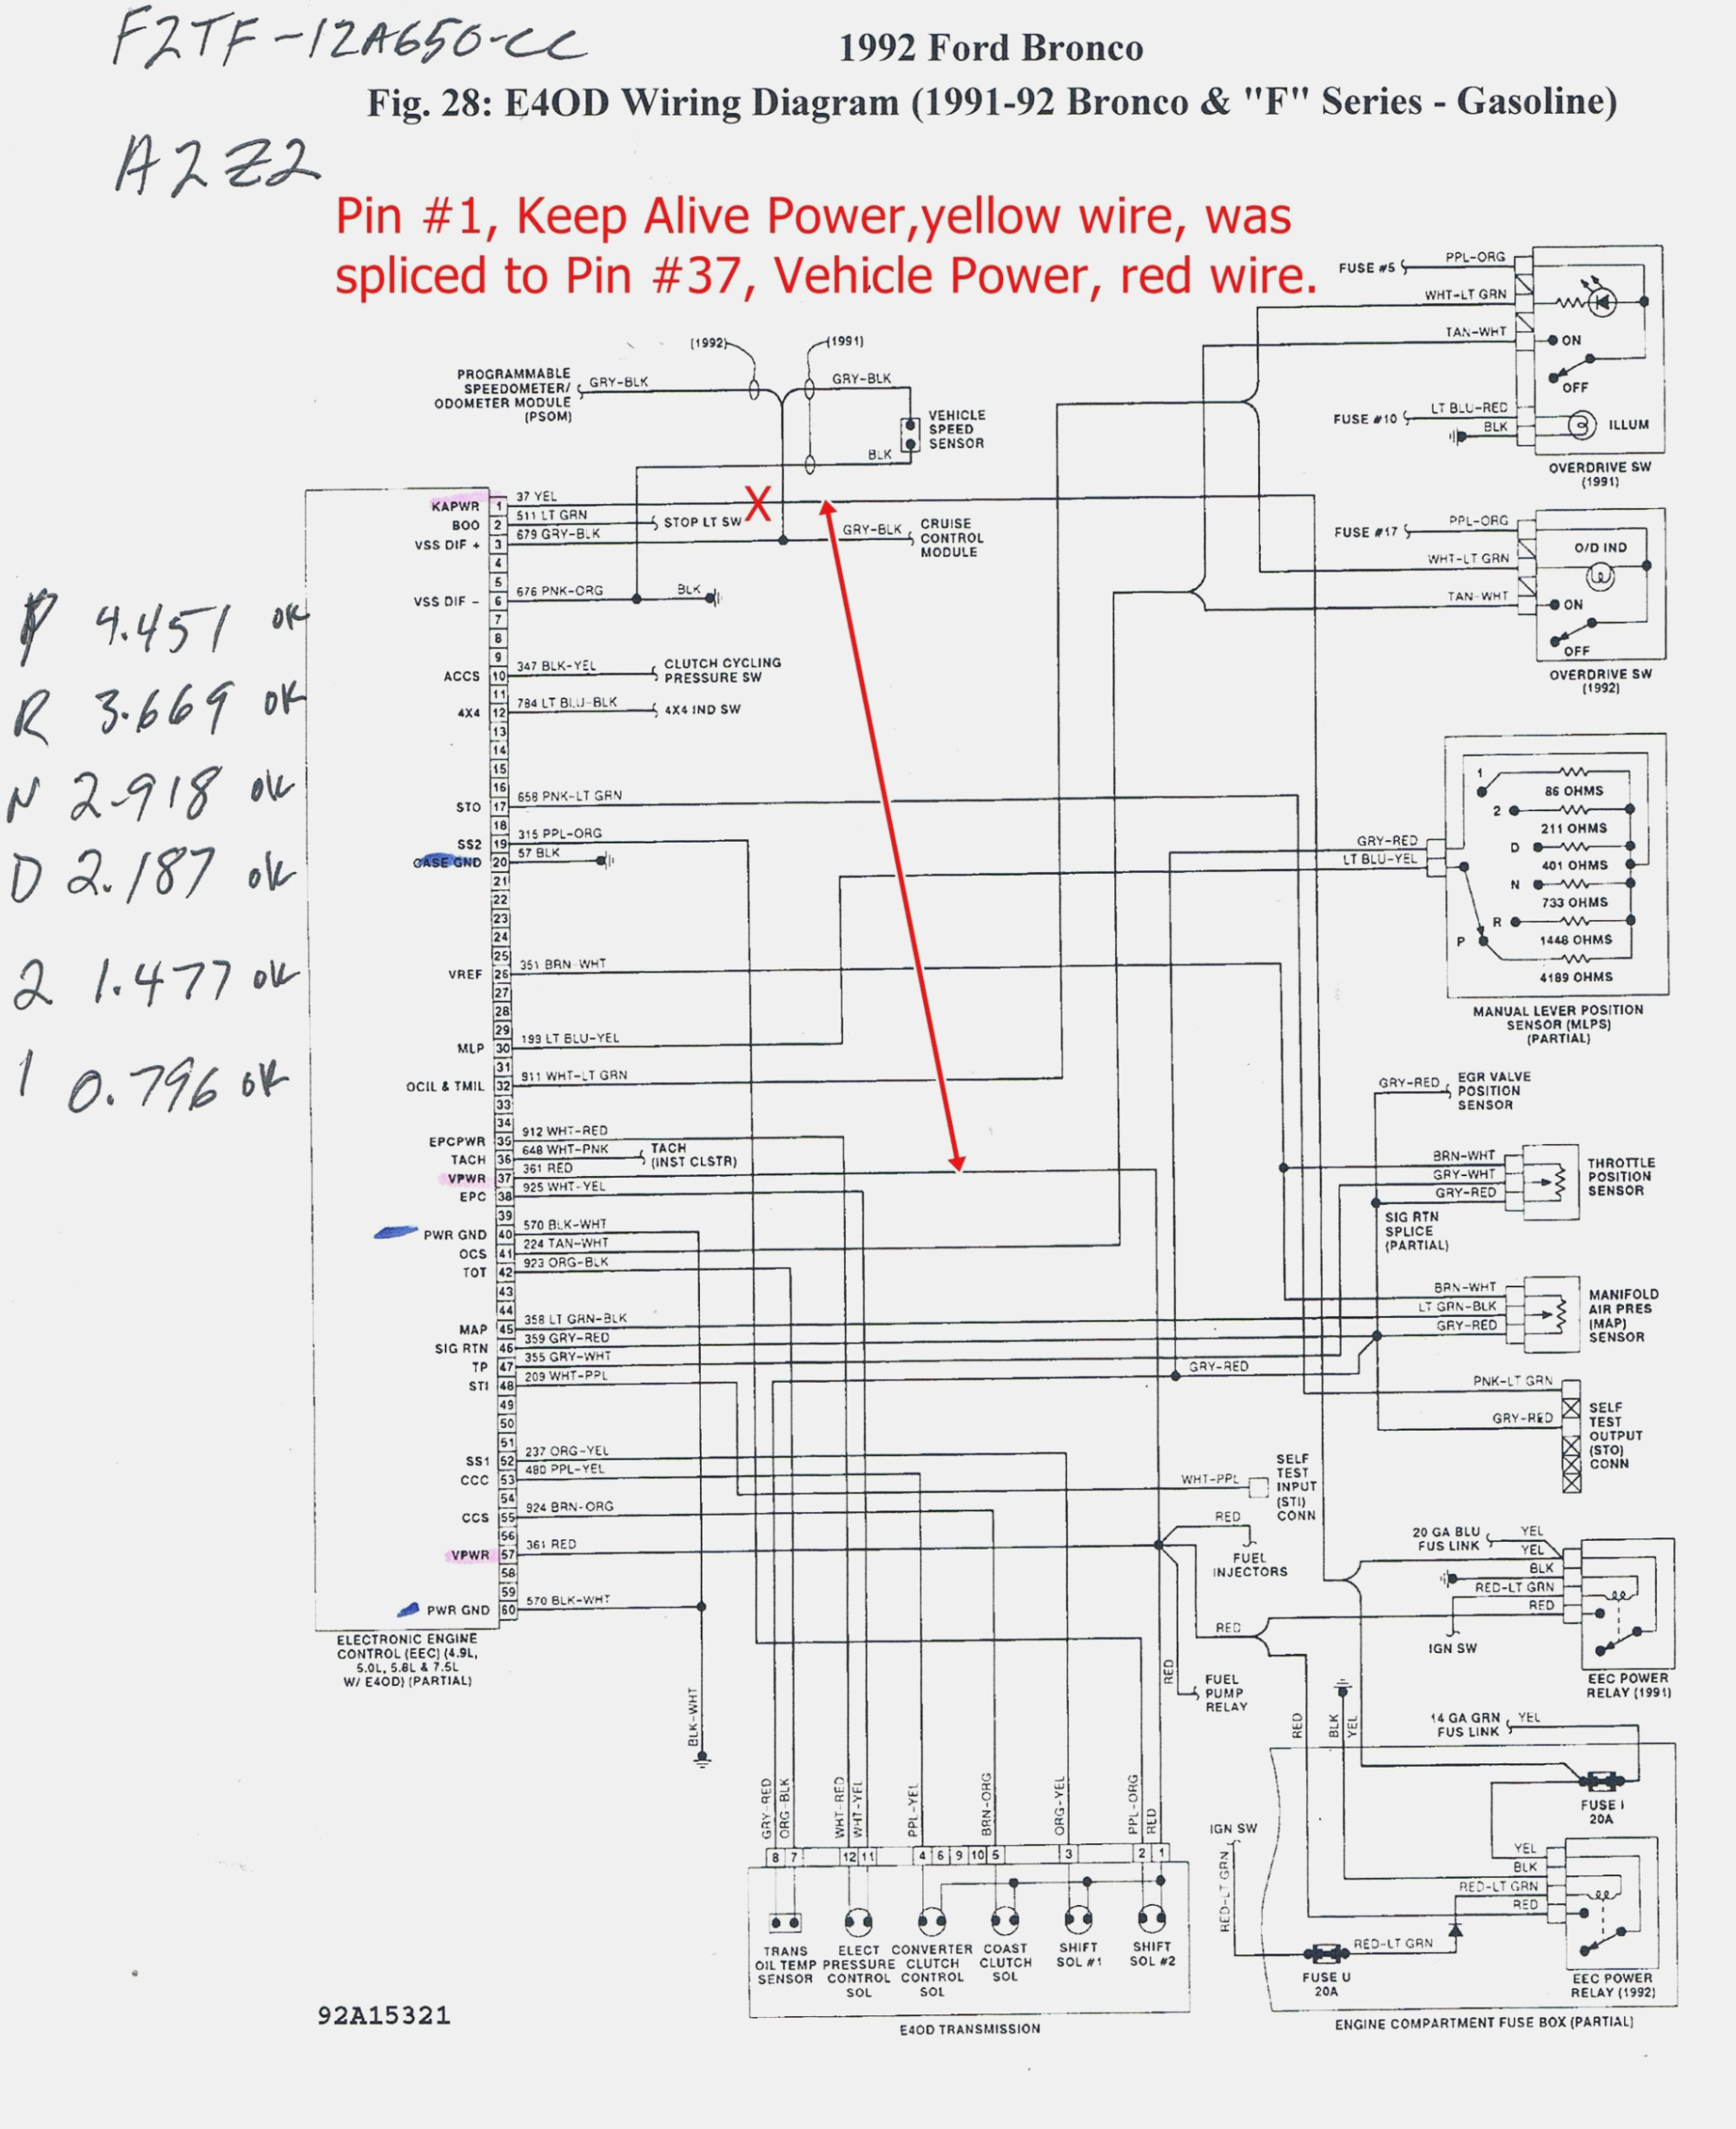 200R4 Wiring Diagram | Wiring Library - 200R4 Lockup Wiring Diagram